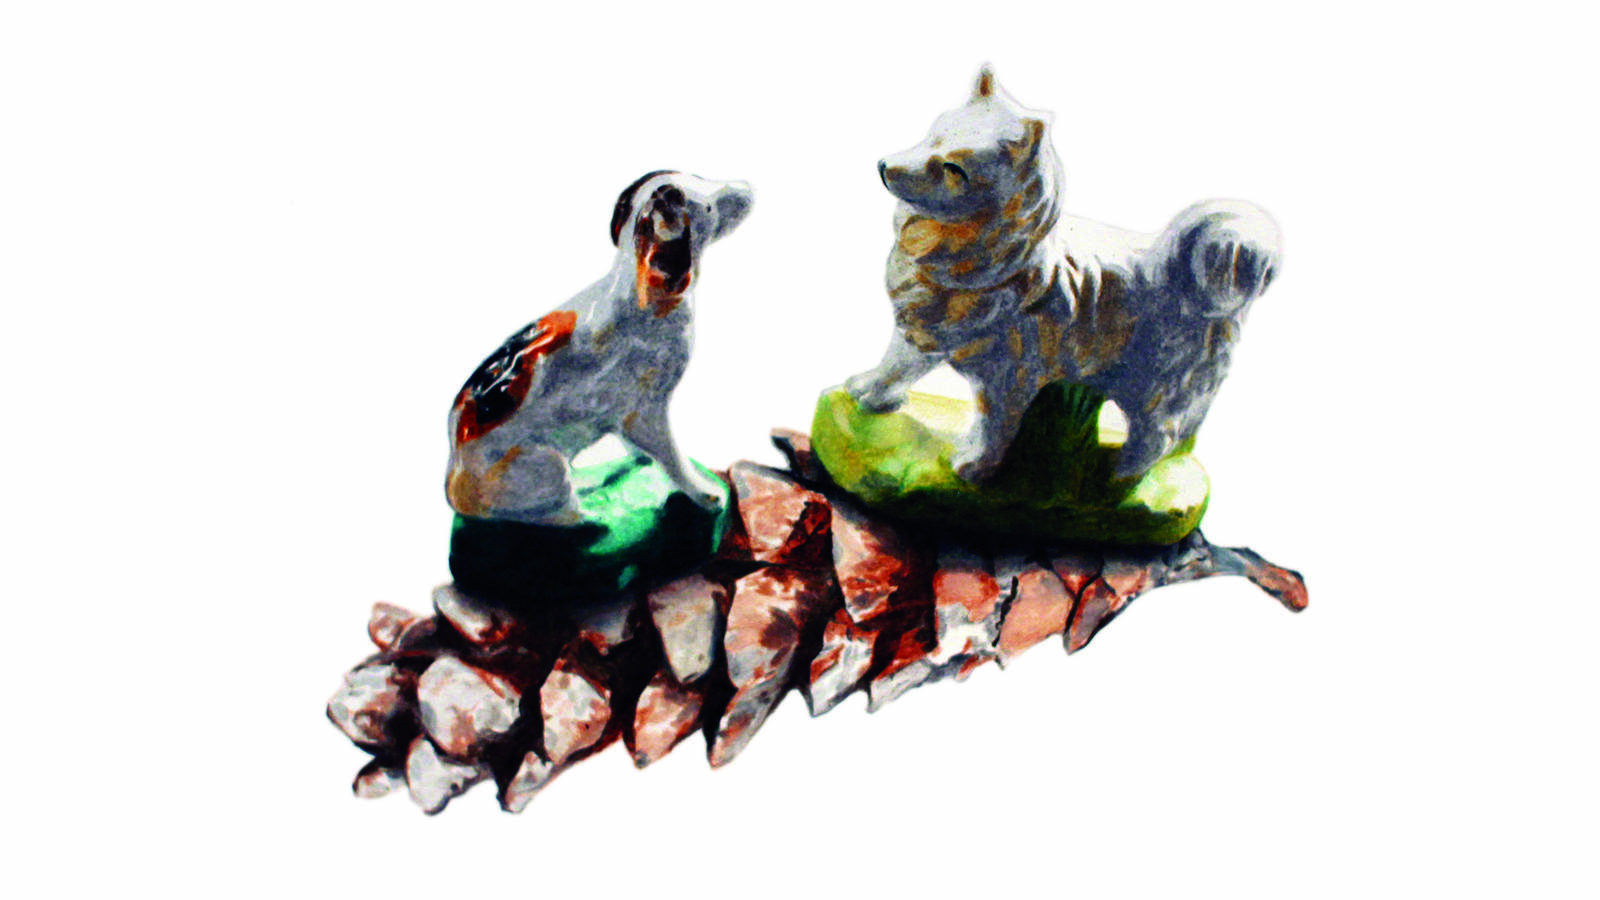 """<h3 style=""""text-align: center; padding: 50px;""""><span class=""""text-Intro-style"""">A coupling of elements (dog figurines and a pinecone) found in and around Theodore Roosevelt's home at Sagamore Hill National Historic Site. Colored pencil on paper, 2019.</span></h3>"""